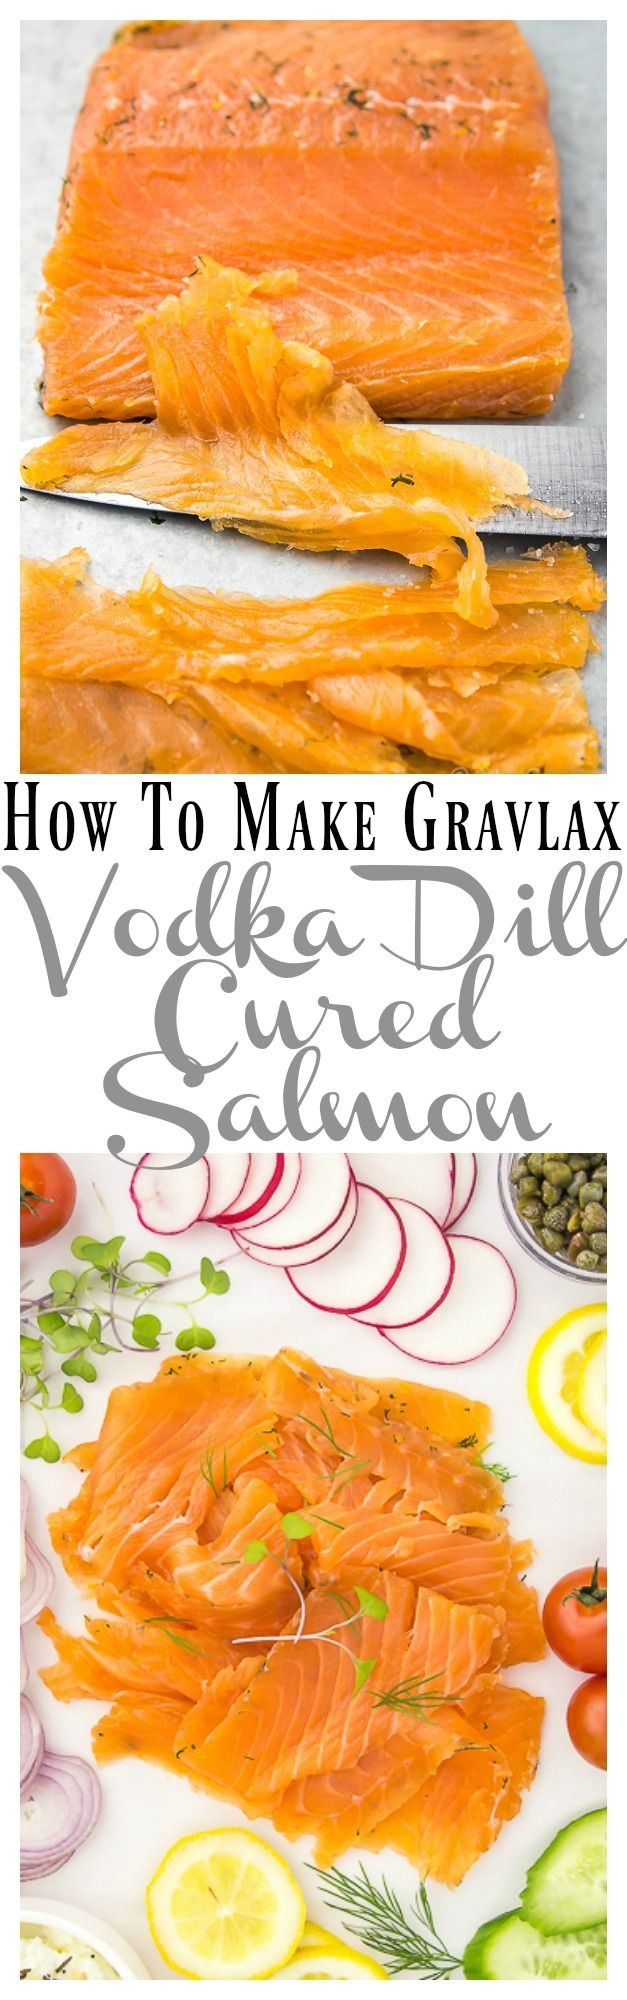 How To Make Gravlax - Vodka Dill Cured Salmon. Super Easy, Yet Elegant, This Showstopping Salmon is Perfect for any Spread!!